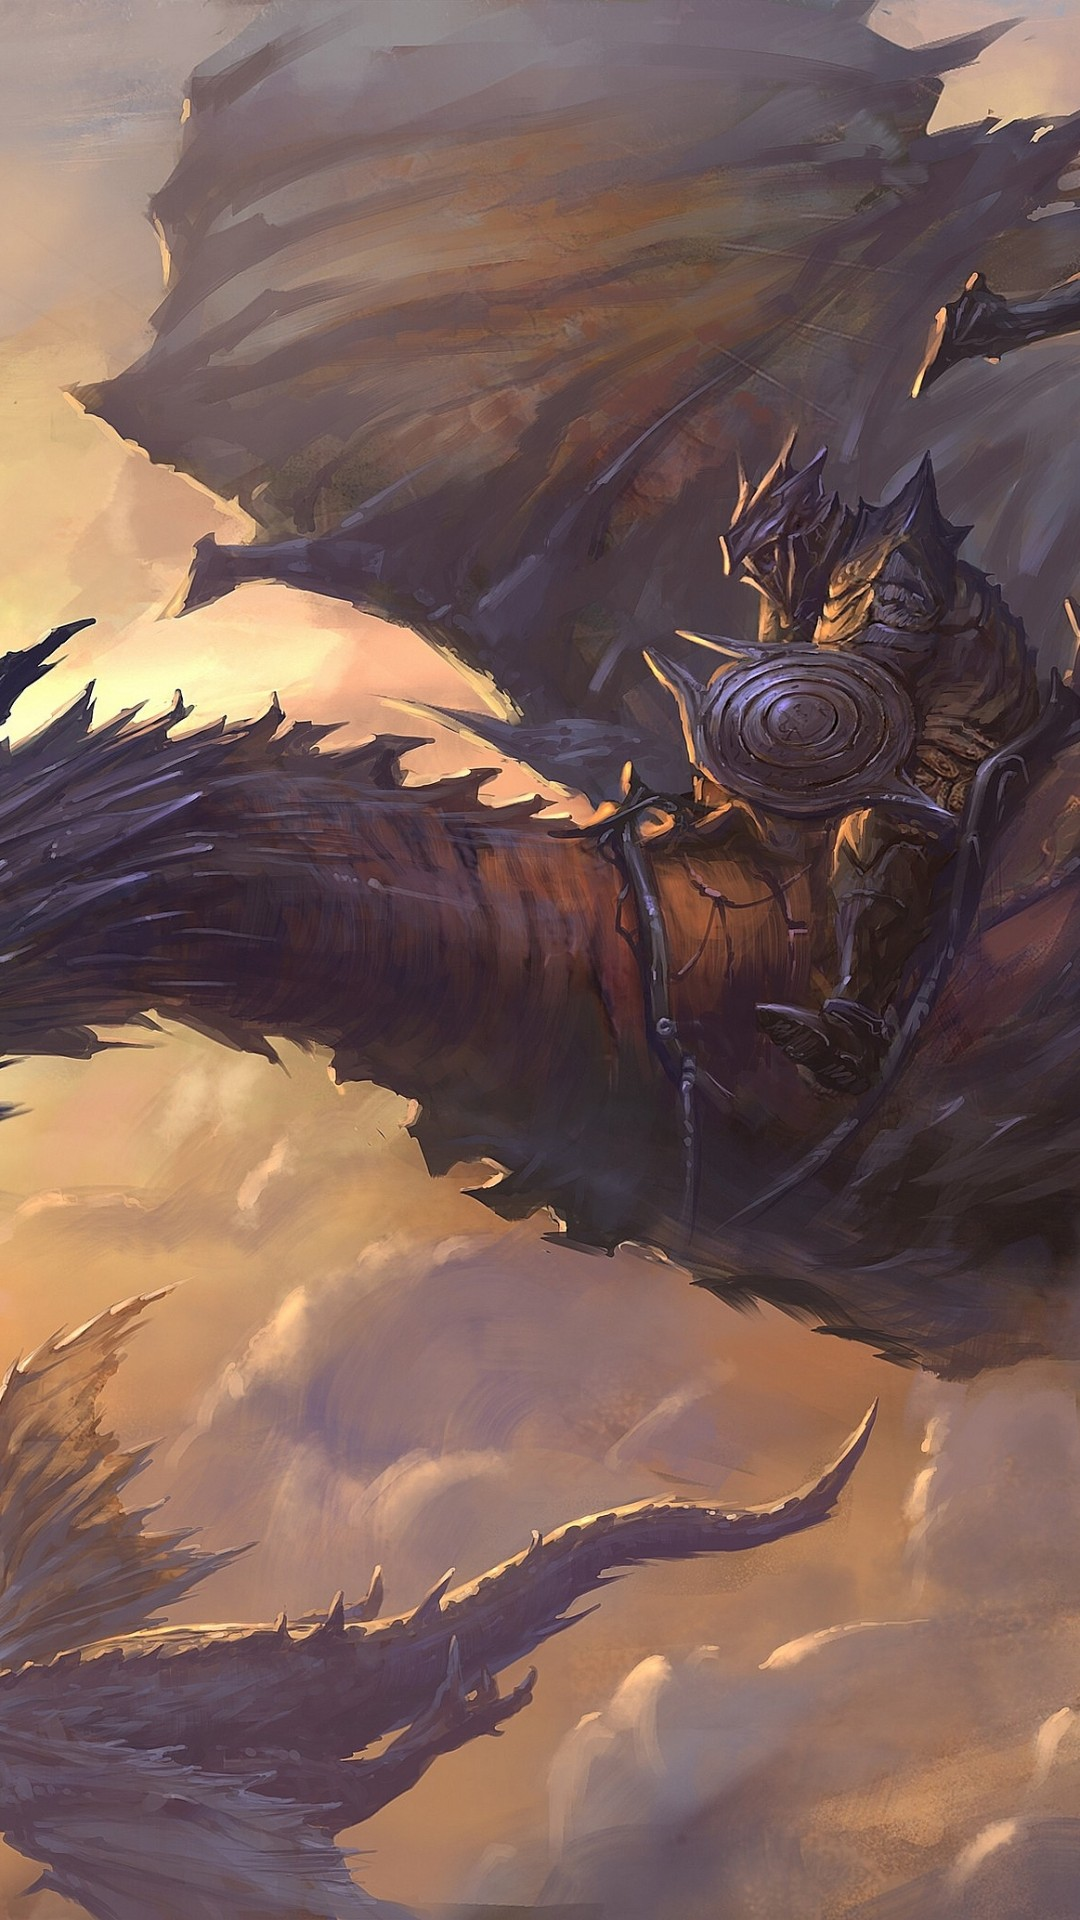 Wallpaper Dragon, sky, clouds, rider, armor, art, wings